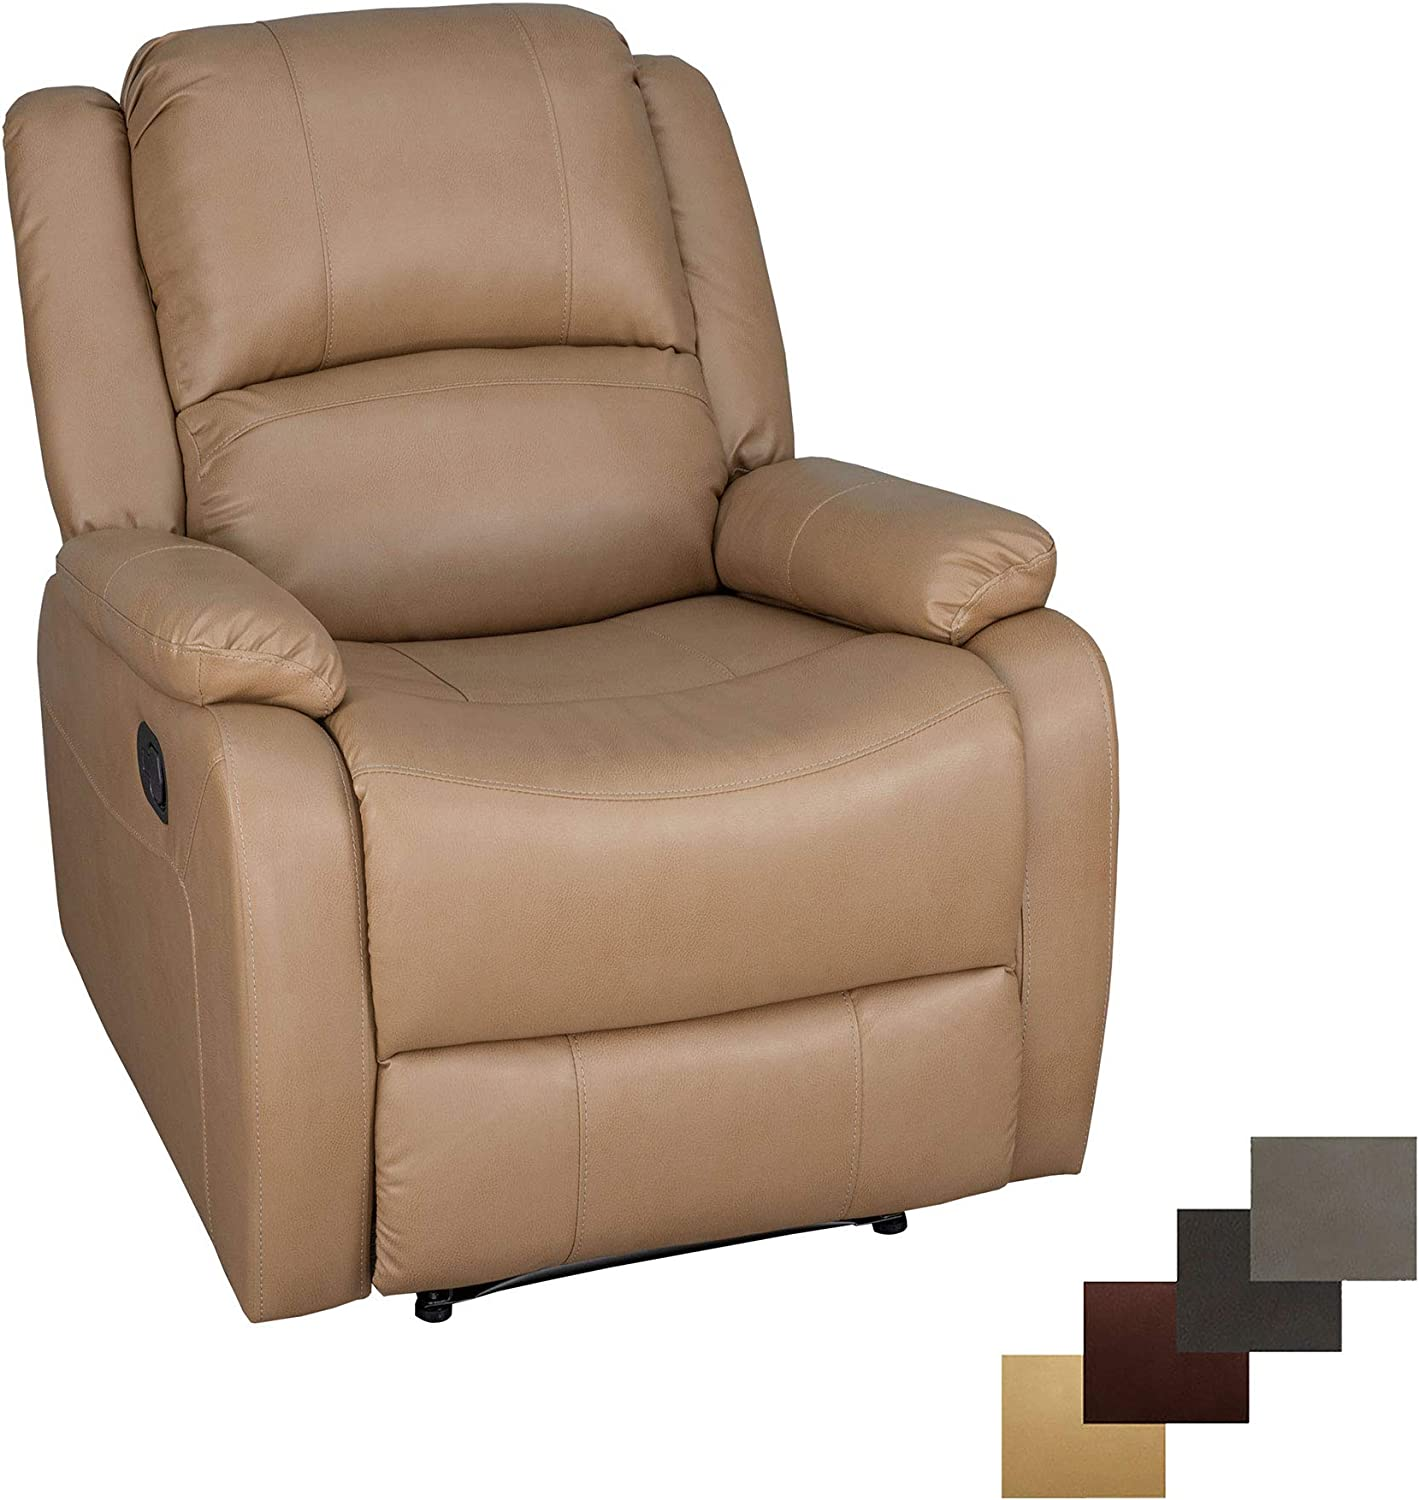 RecPro Charles Collection 30 Zero Wall RV Recliner Wall Hugger Recliner RV Living Room Slideout Chair RV Furniture RV Chair Toffee